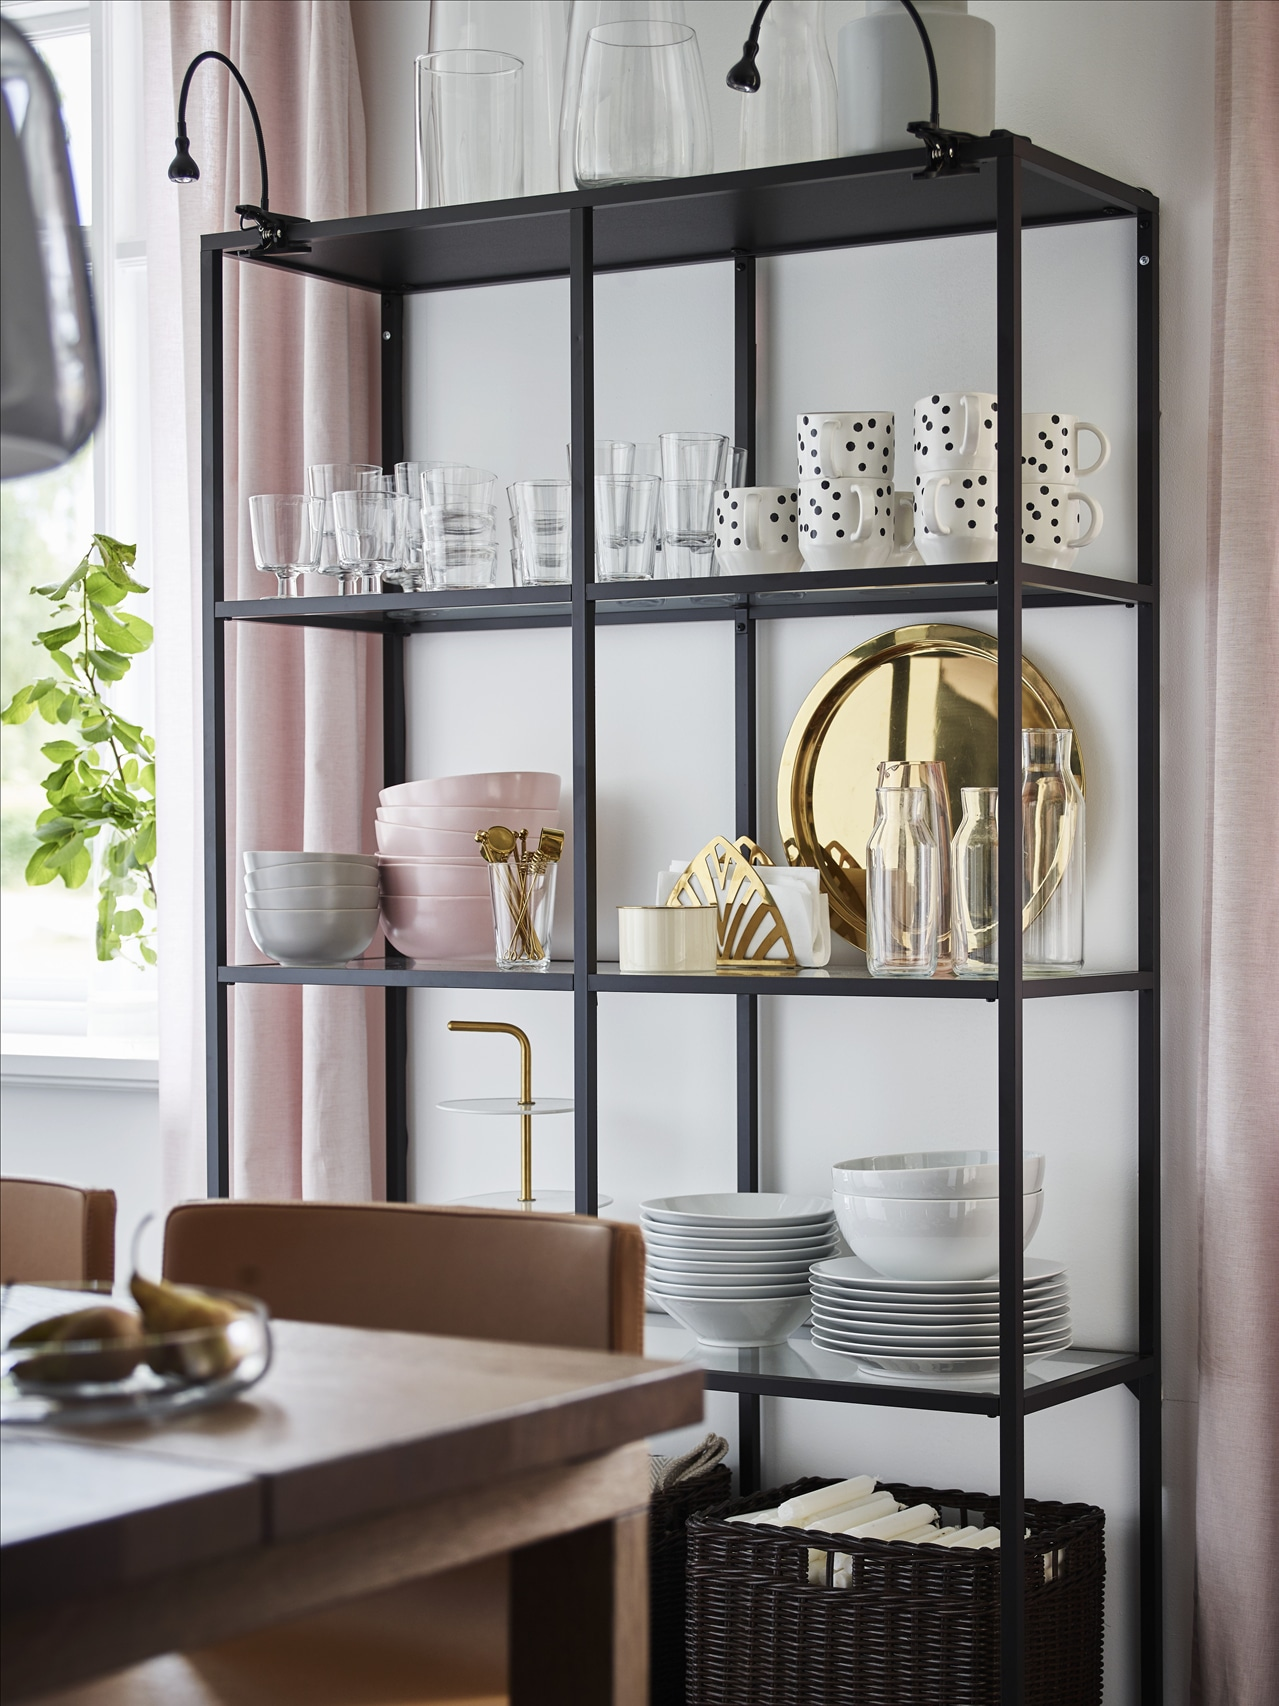 A dining room wall with a black-brown VITTSJÖ shelving unit holding glass and porcelain tableware, and a table with chairs.